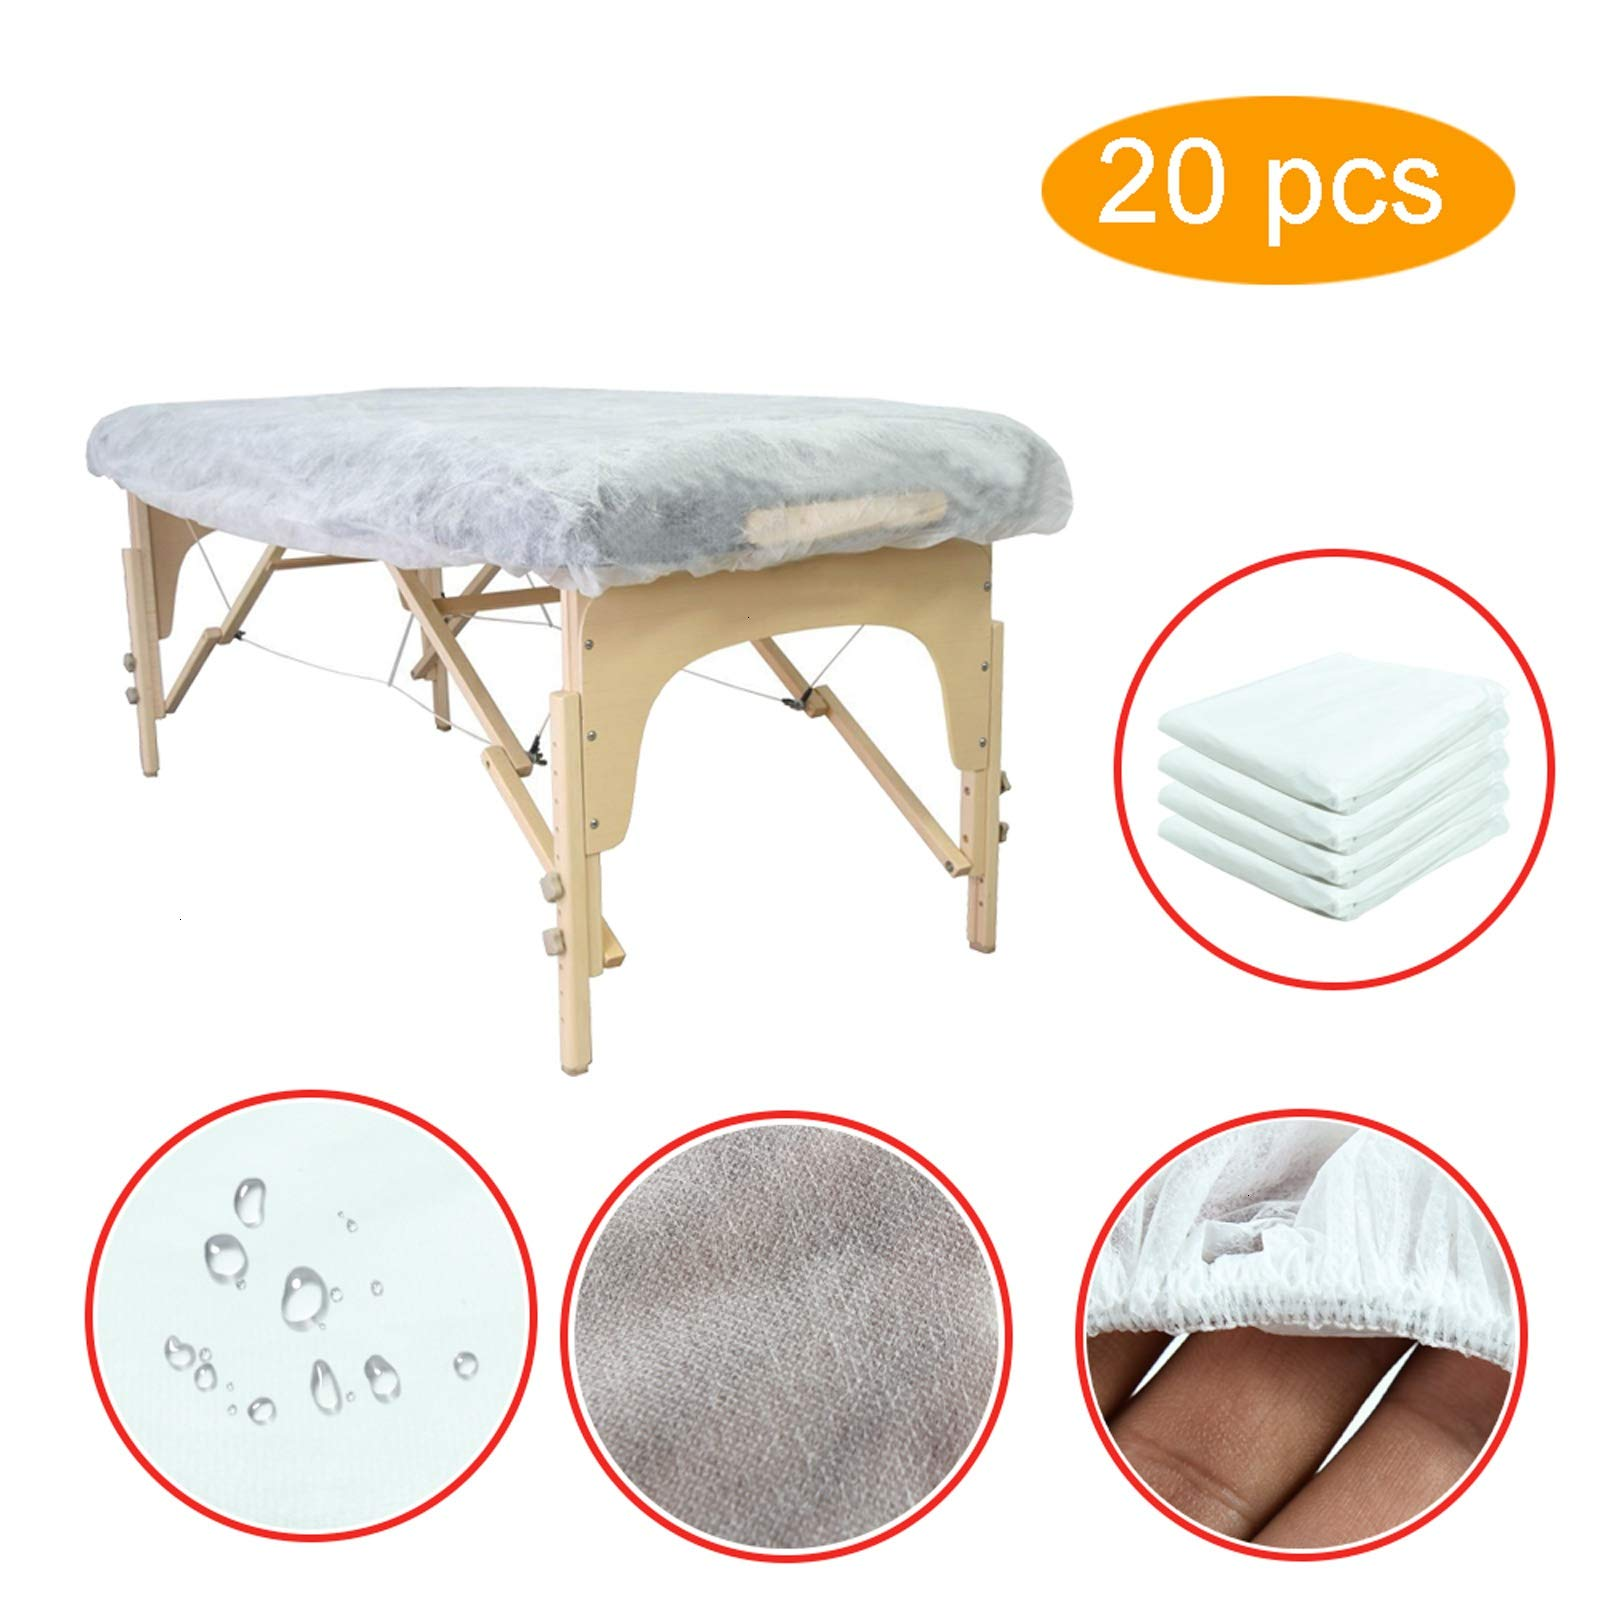 AQUEENLY Fitted Massage Sheets Pack of 20, Disposable Massage Table Cover with Elastic Design, Soft Non-woven Fabric, 78.7 x 31.5 inches(White) by AQUEENLY